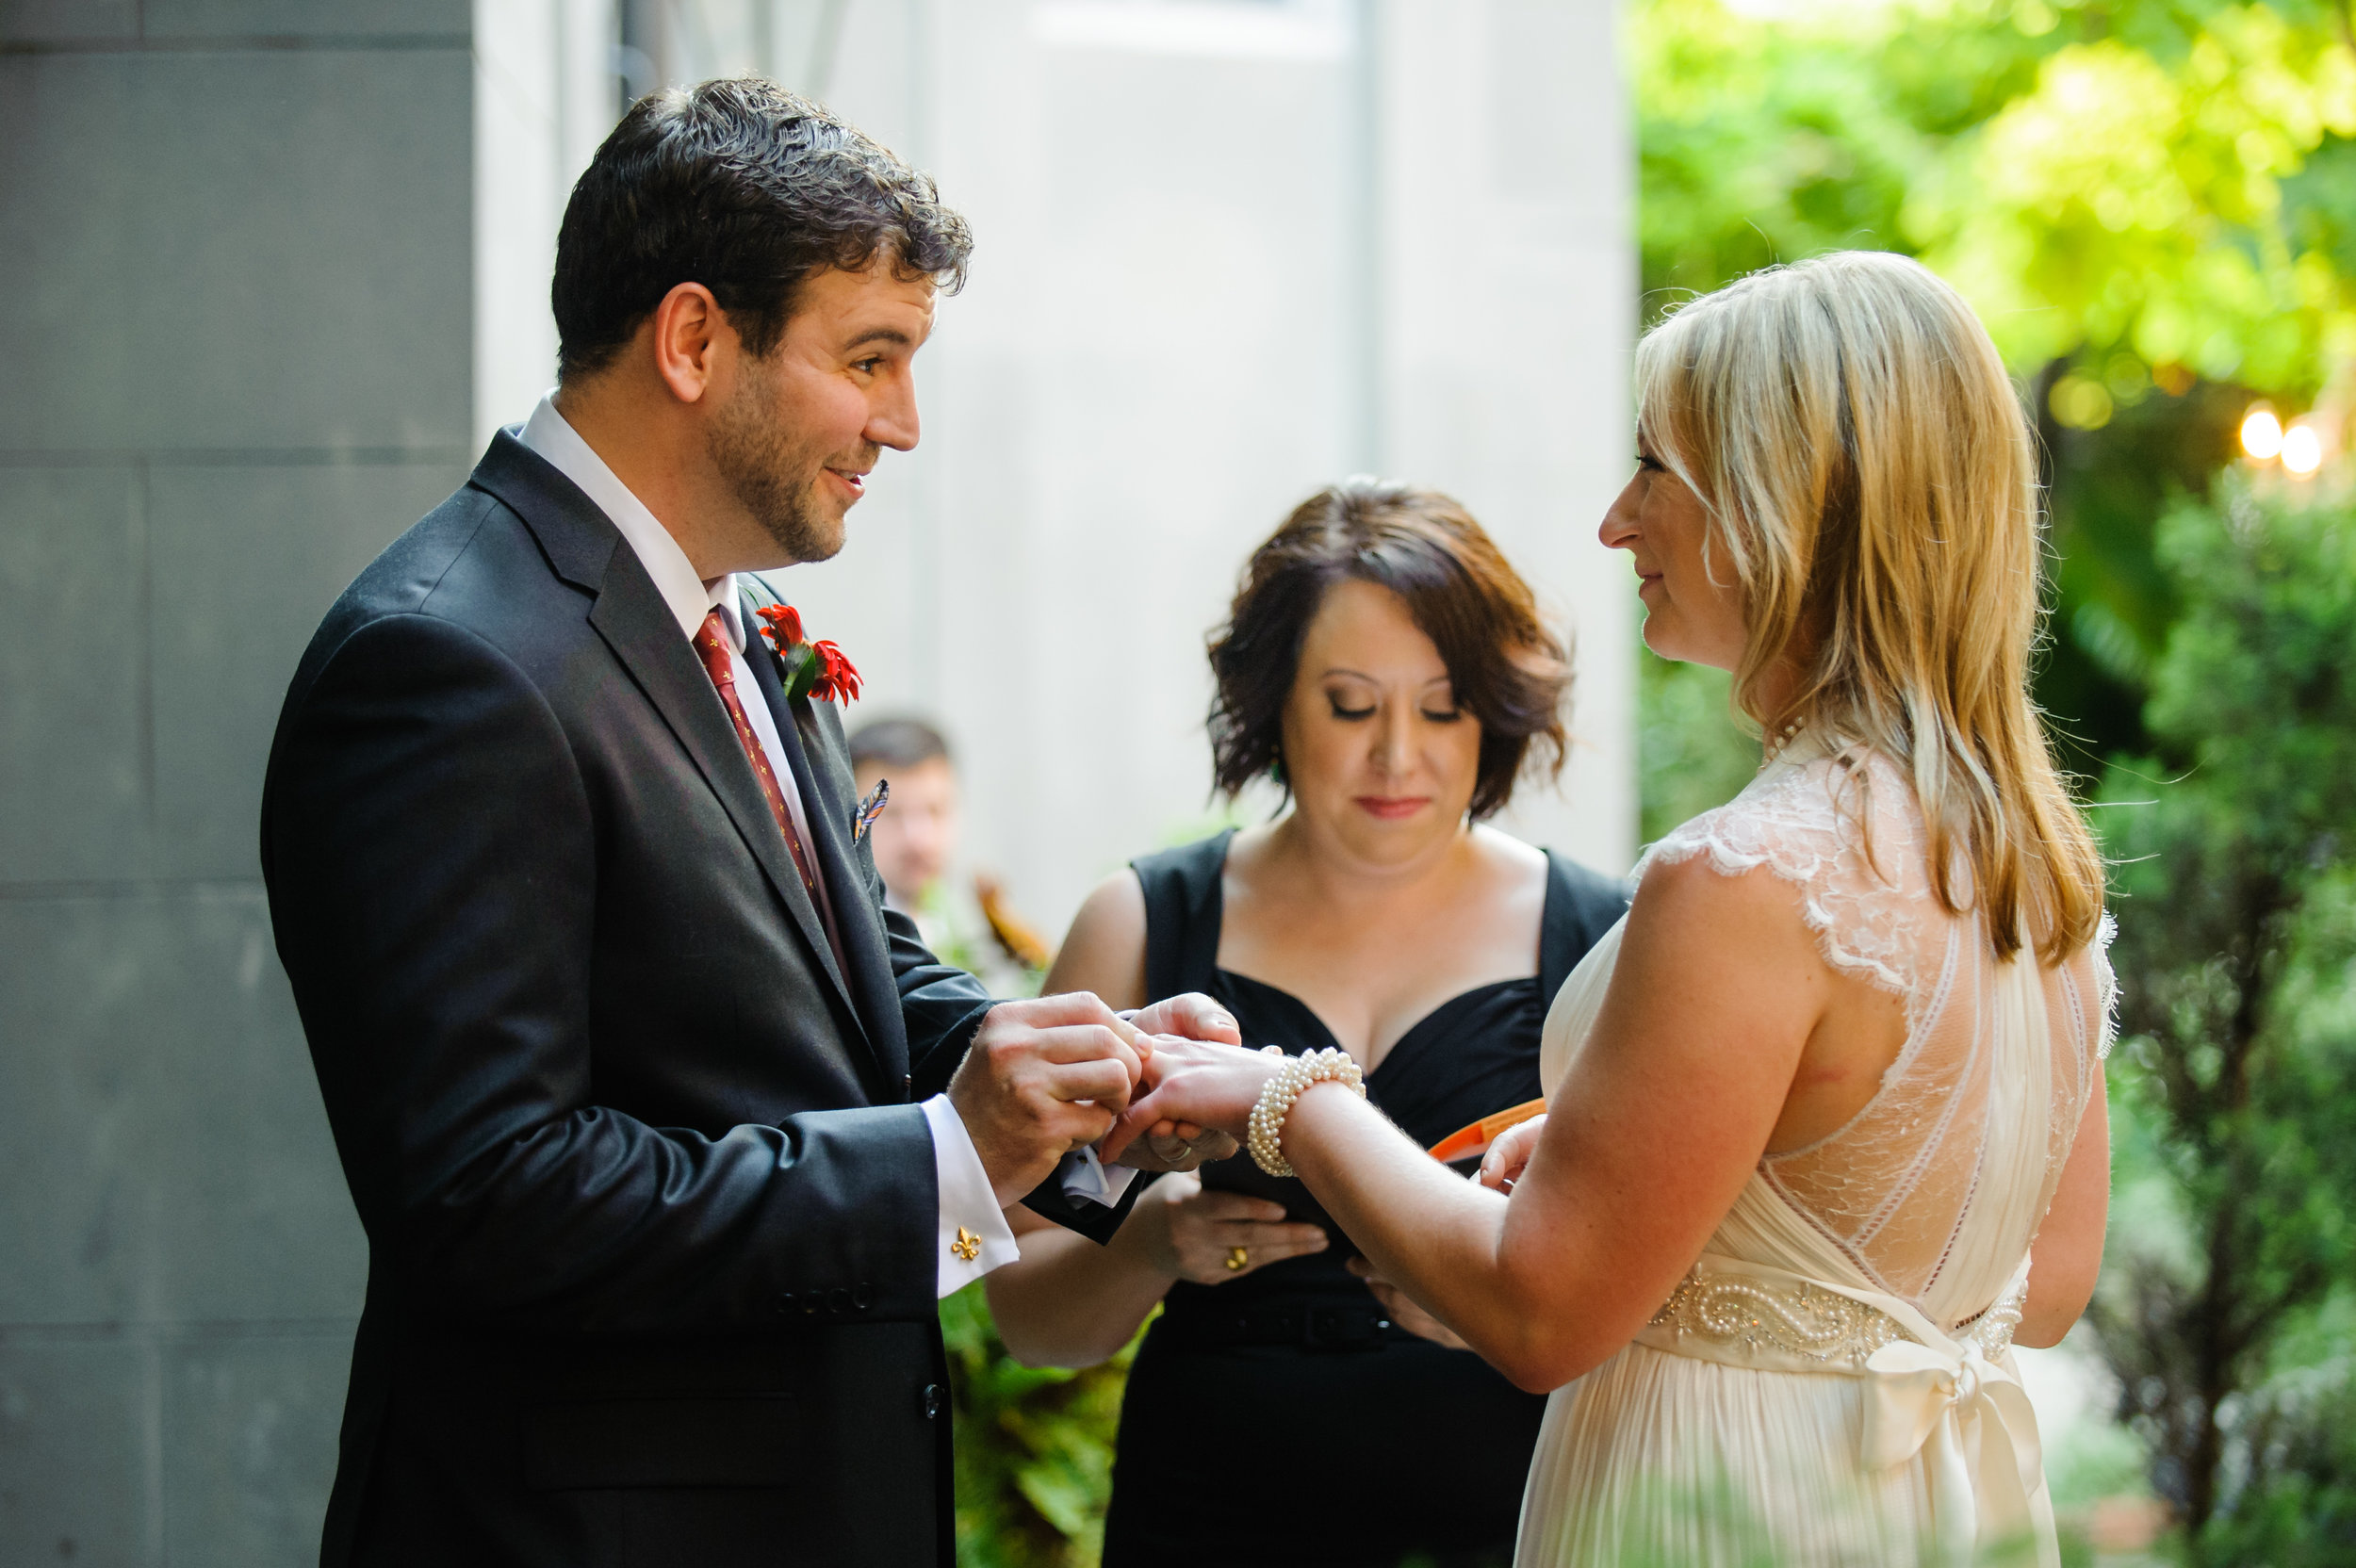 Courtyard wedding at Cafe Amelie, New Orleans